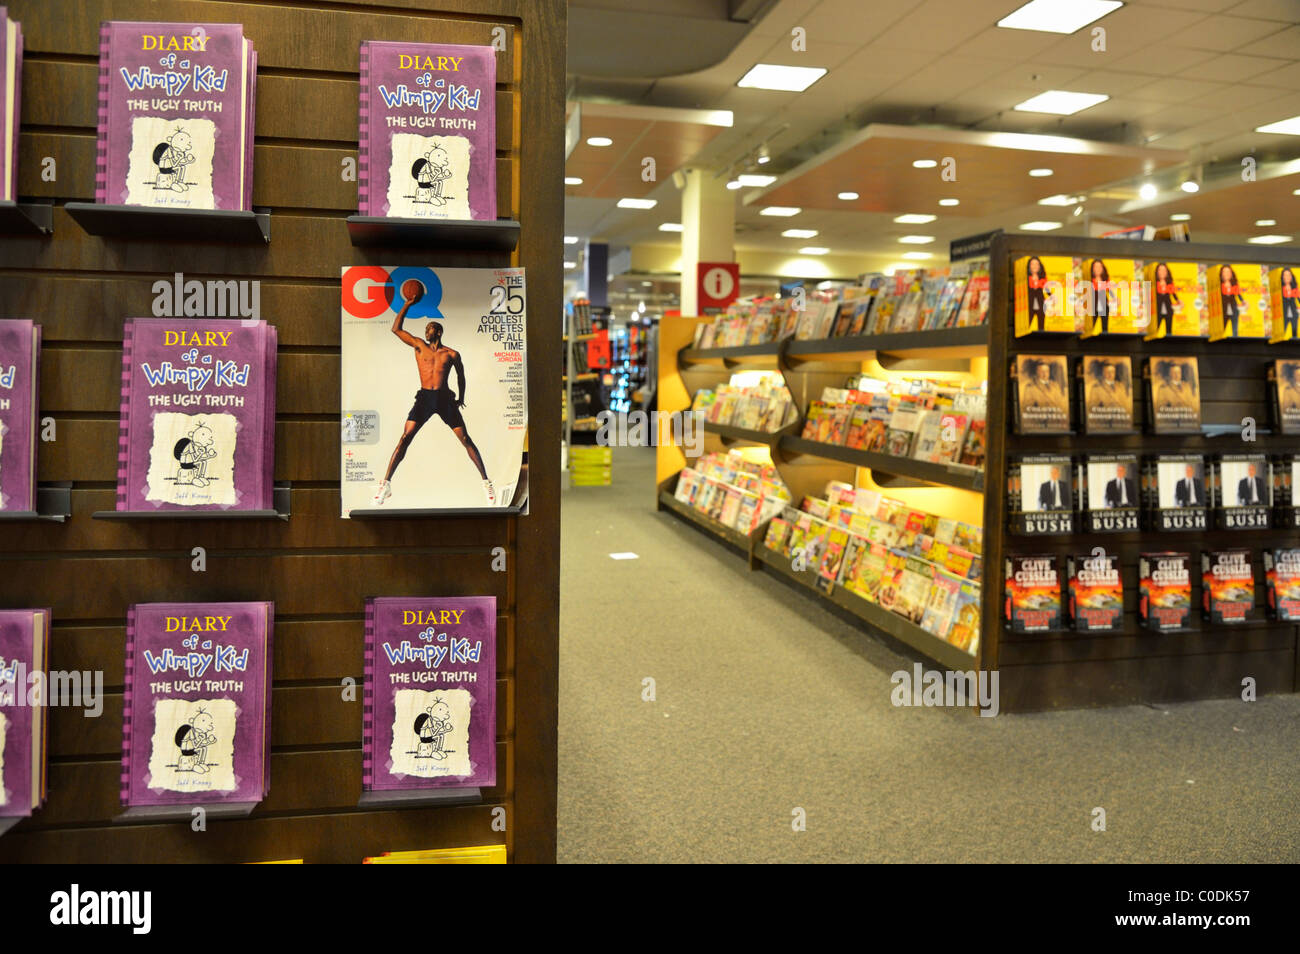 GQ Special Issue on a newspaper stand at Borders bookstore, San Jose, California CA - Stock Image